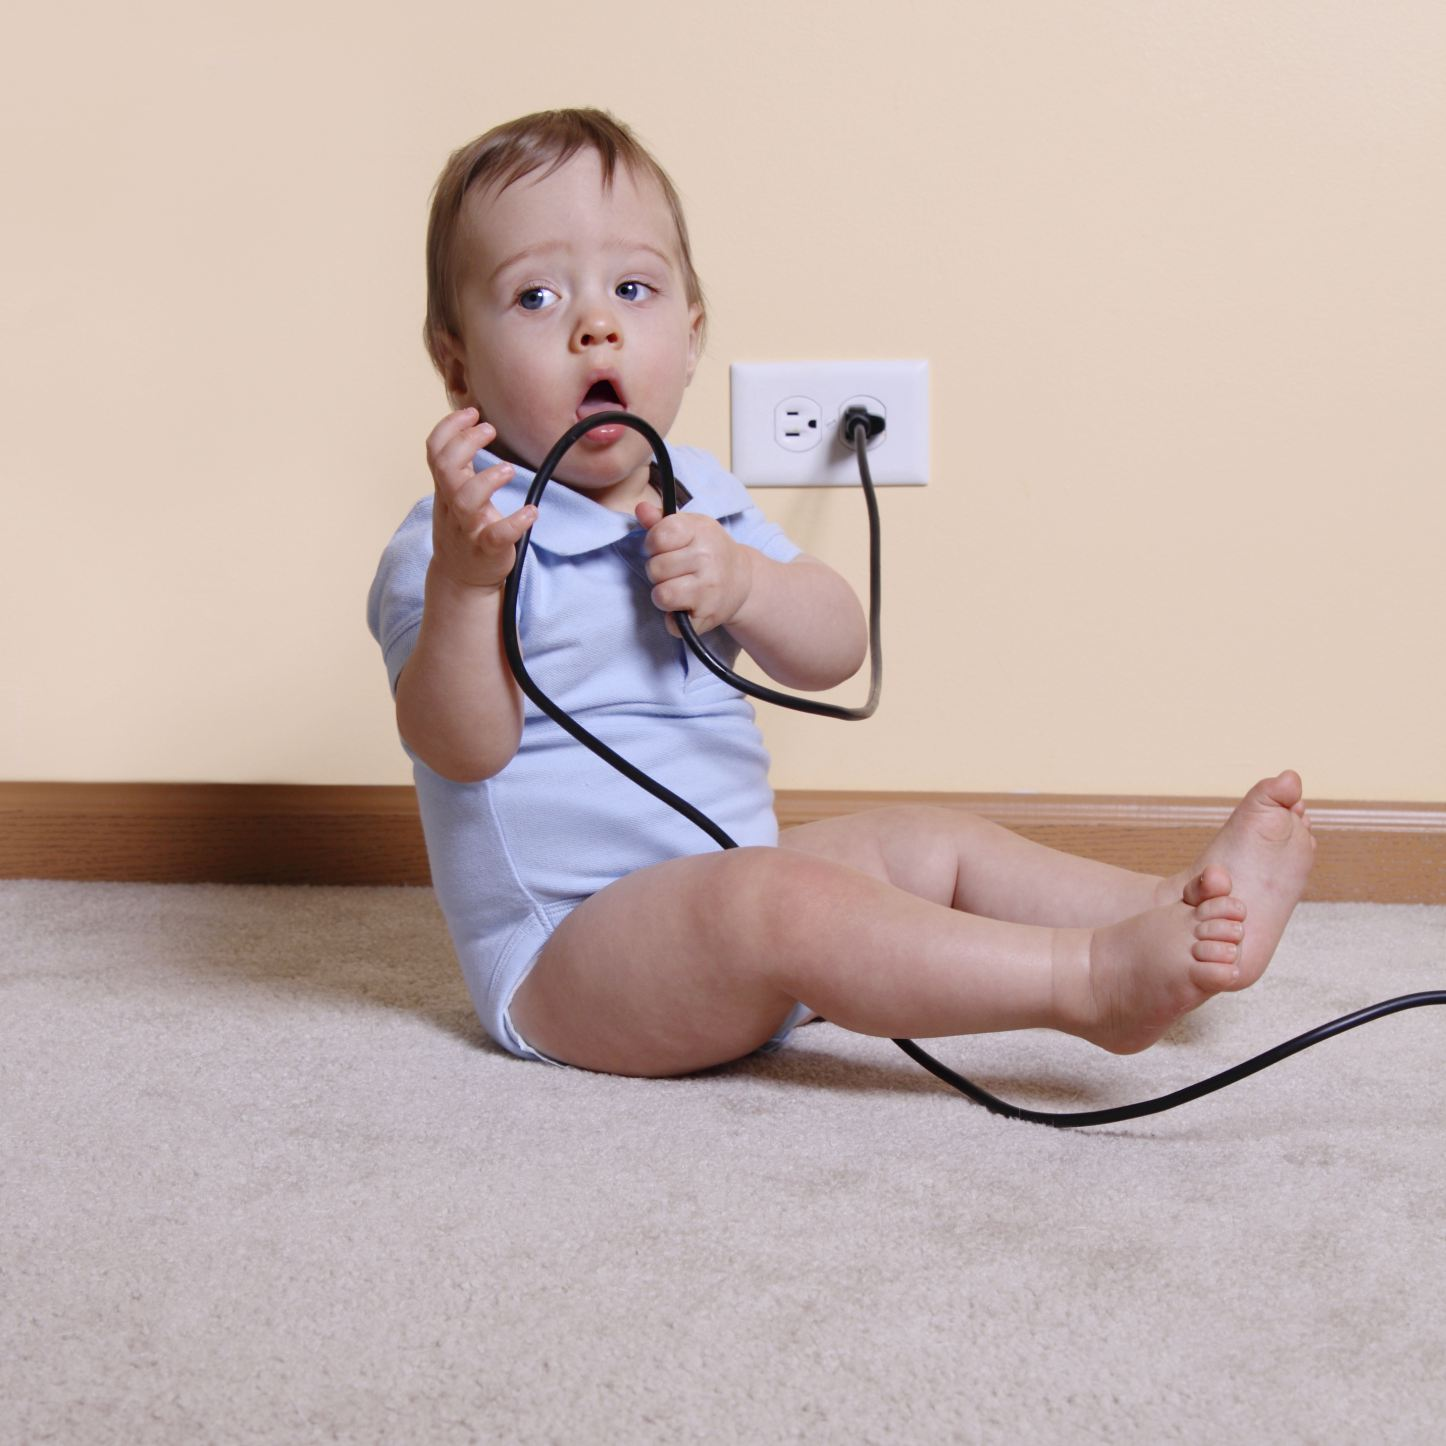 Childproofing fail: Baby playing with electrical wire